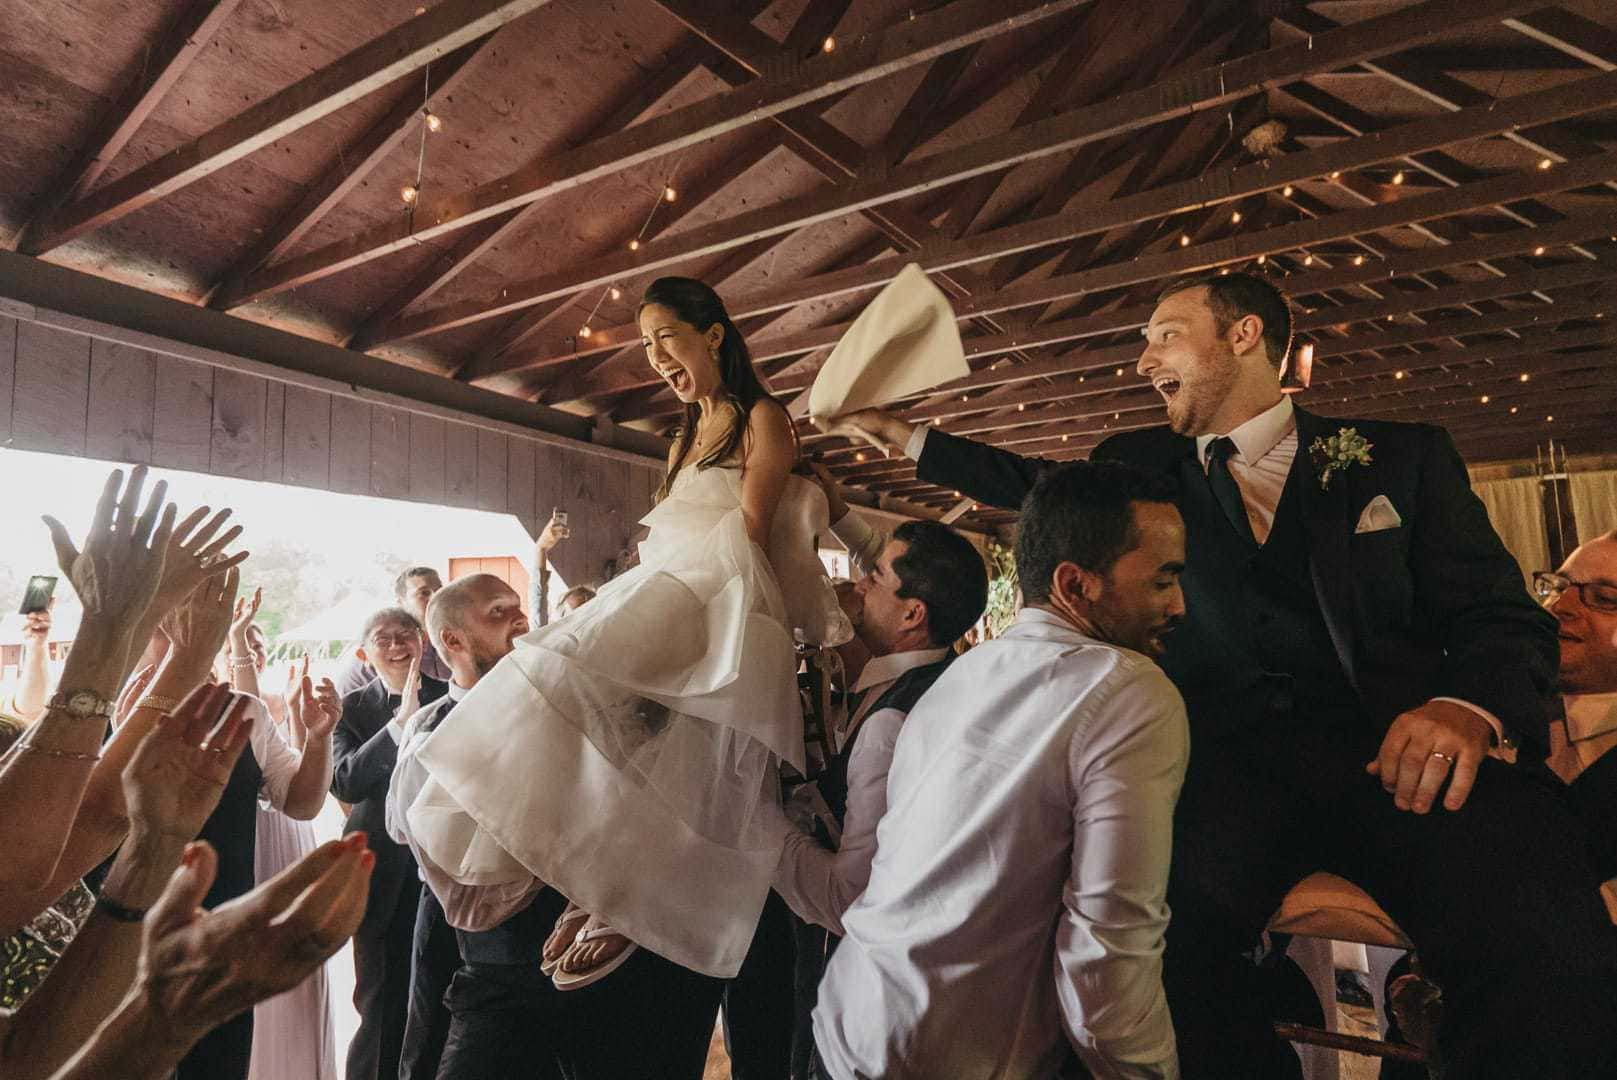 Bride and groom are lifted up on chairs during hora at wedding reception, groom looking excited and bride smiling widely but nervously.